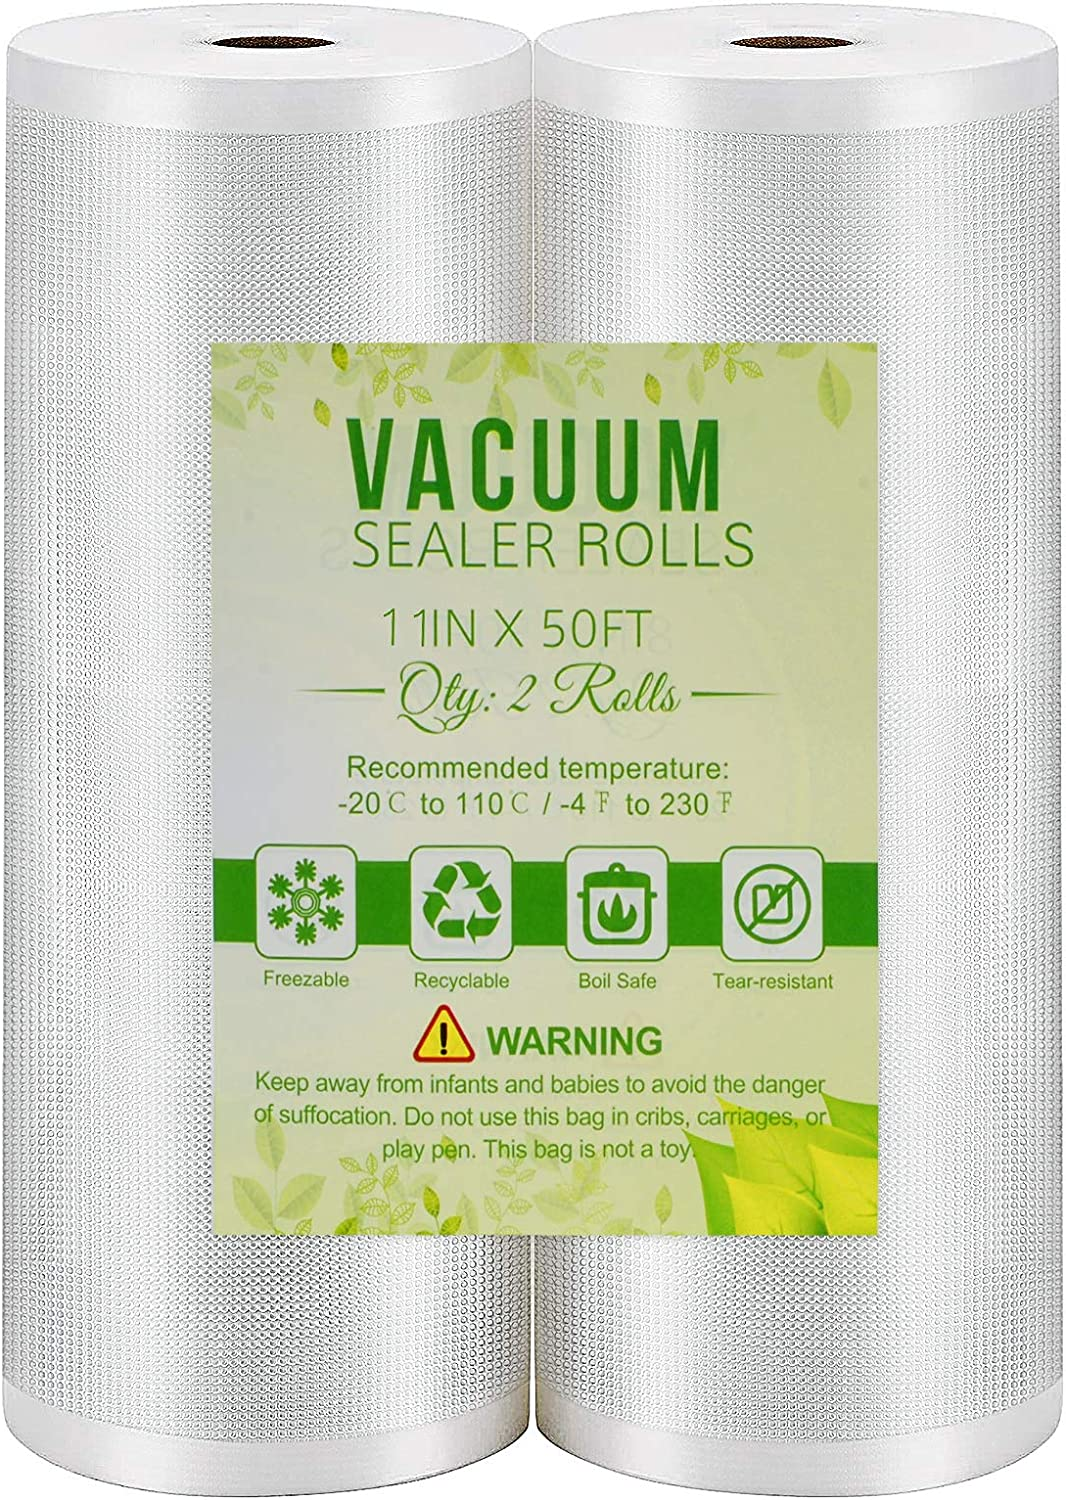 Vacuum Sealer Bags 2 Pack 11''x50' Rolls Commercial Grade Food Saver Bags for Seal a Meal, BPA Free, Great for Vac Storage